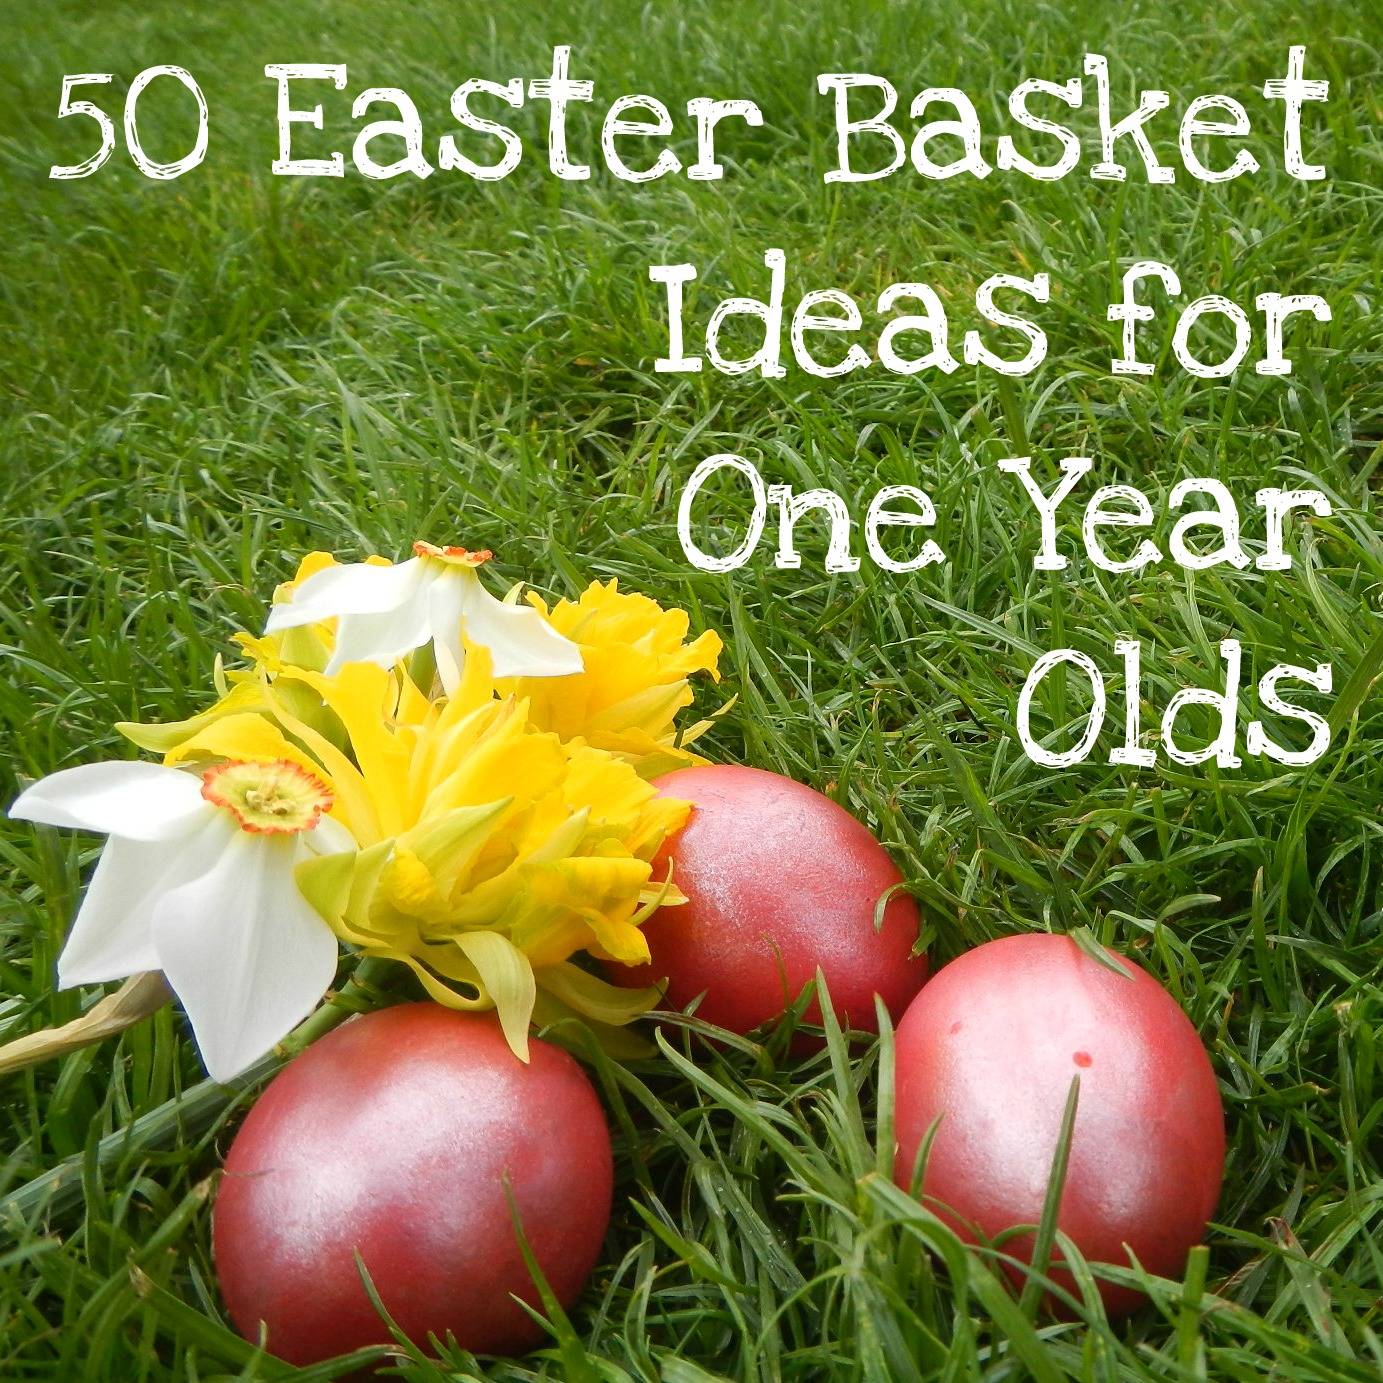 Messy wife blessed life 50 easter basket ideas for one year olds 50 easter basket ideas for one year olds negle Gallery